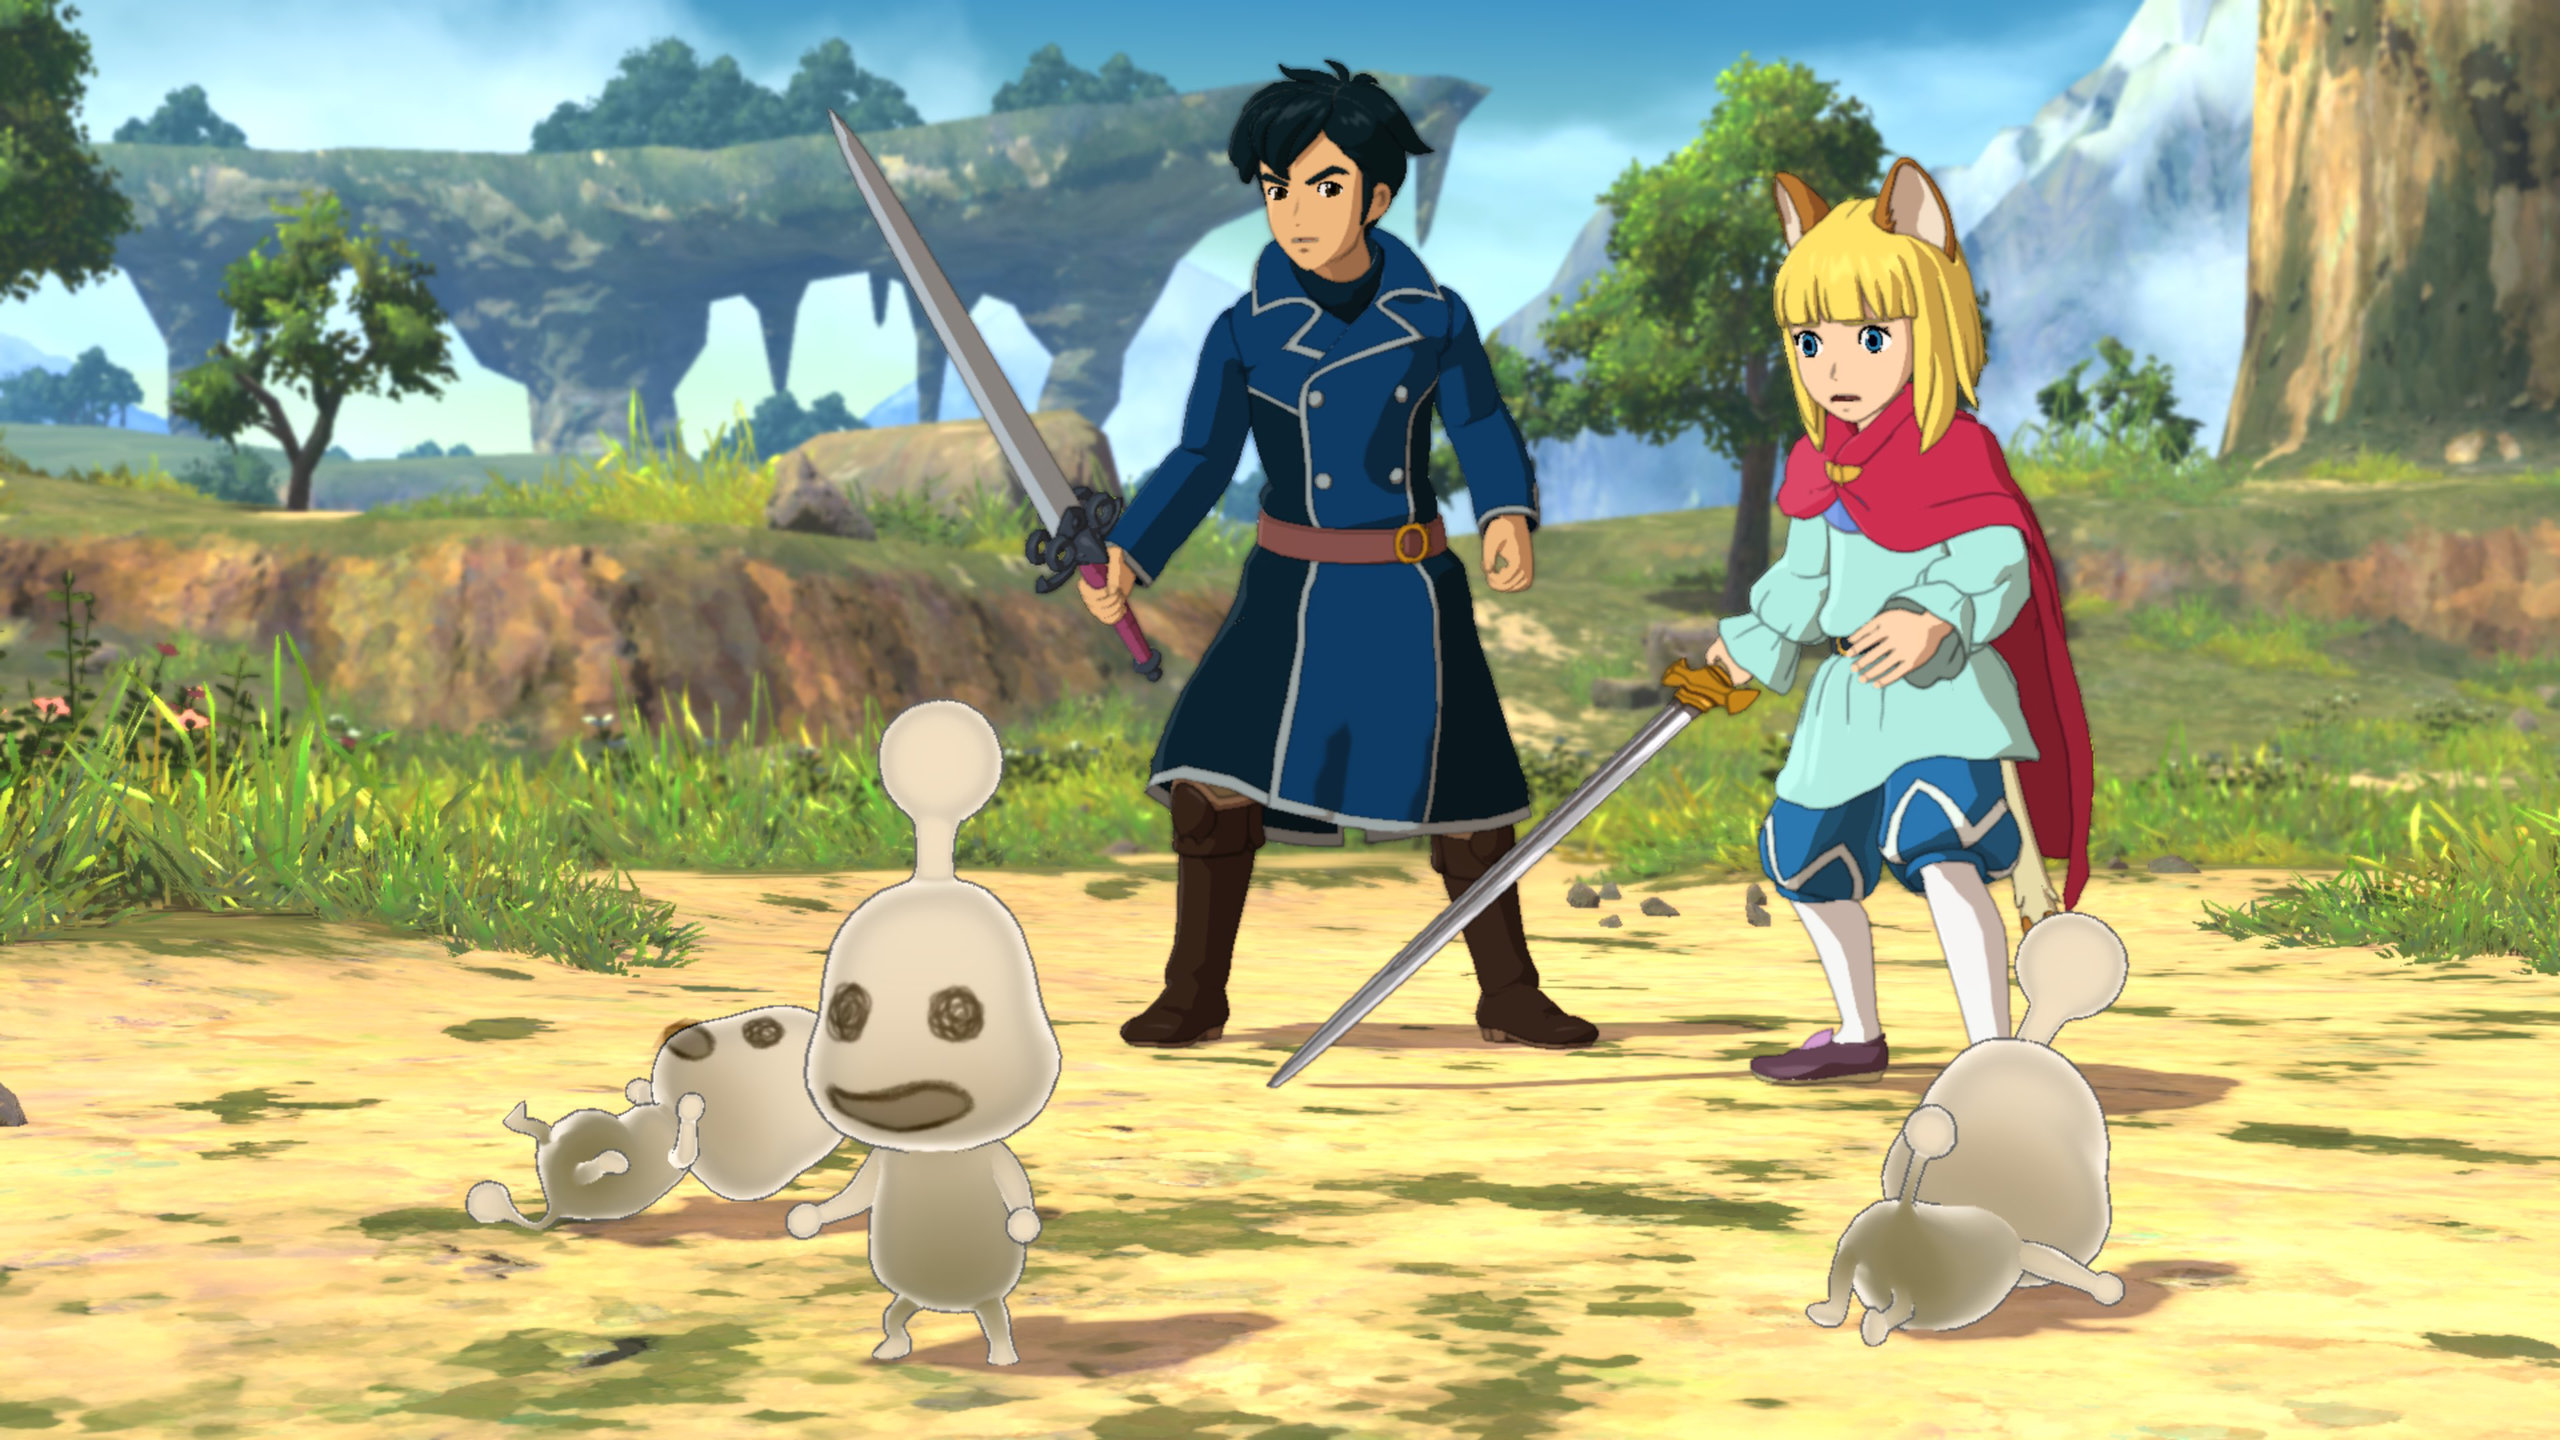 The heroes of Ni no Kuni II stand upon a grassy field, with pale spirits dancing in front of them that have squiggles for eyes.